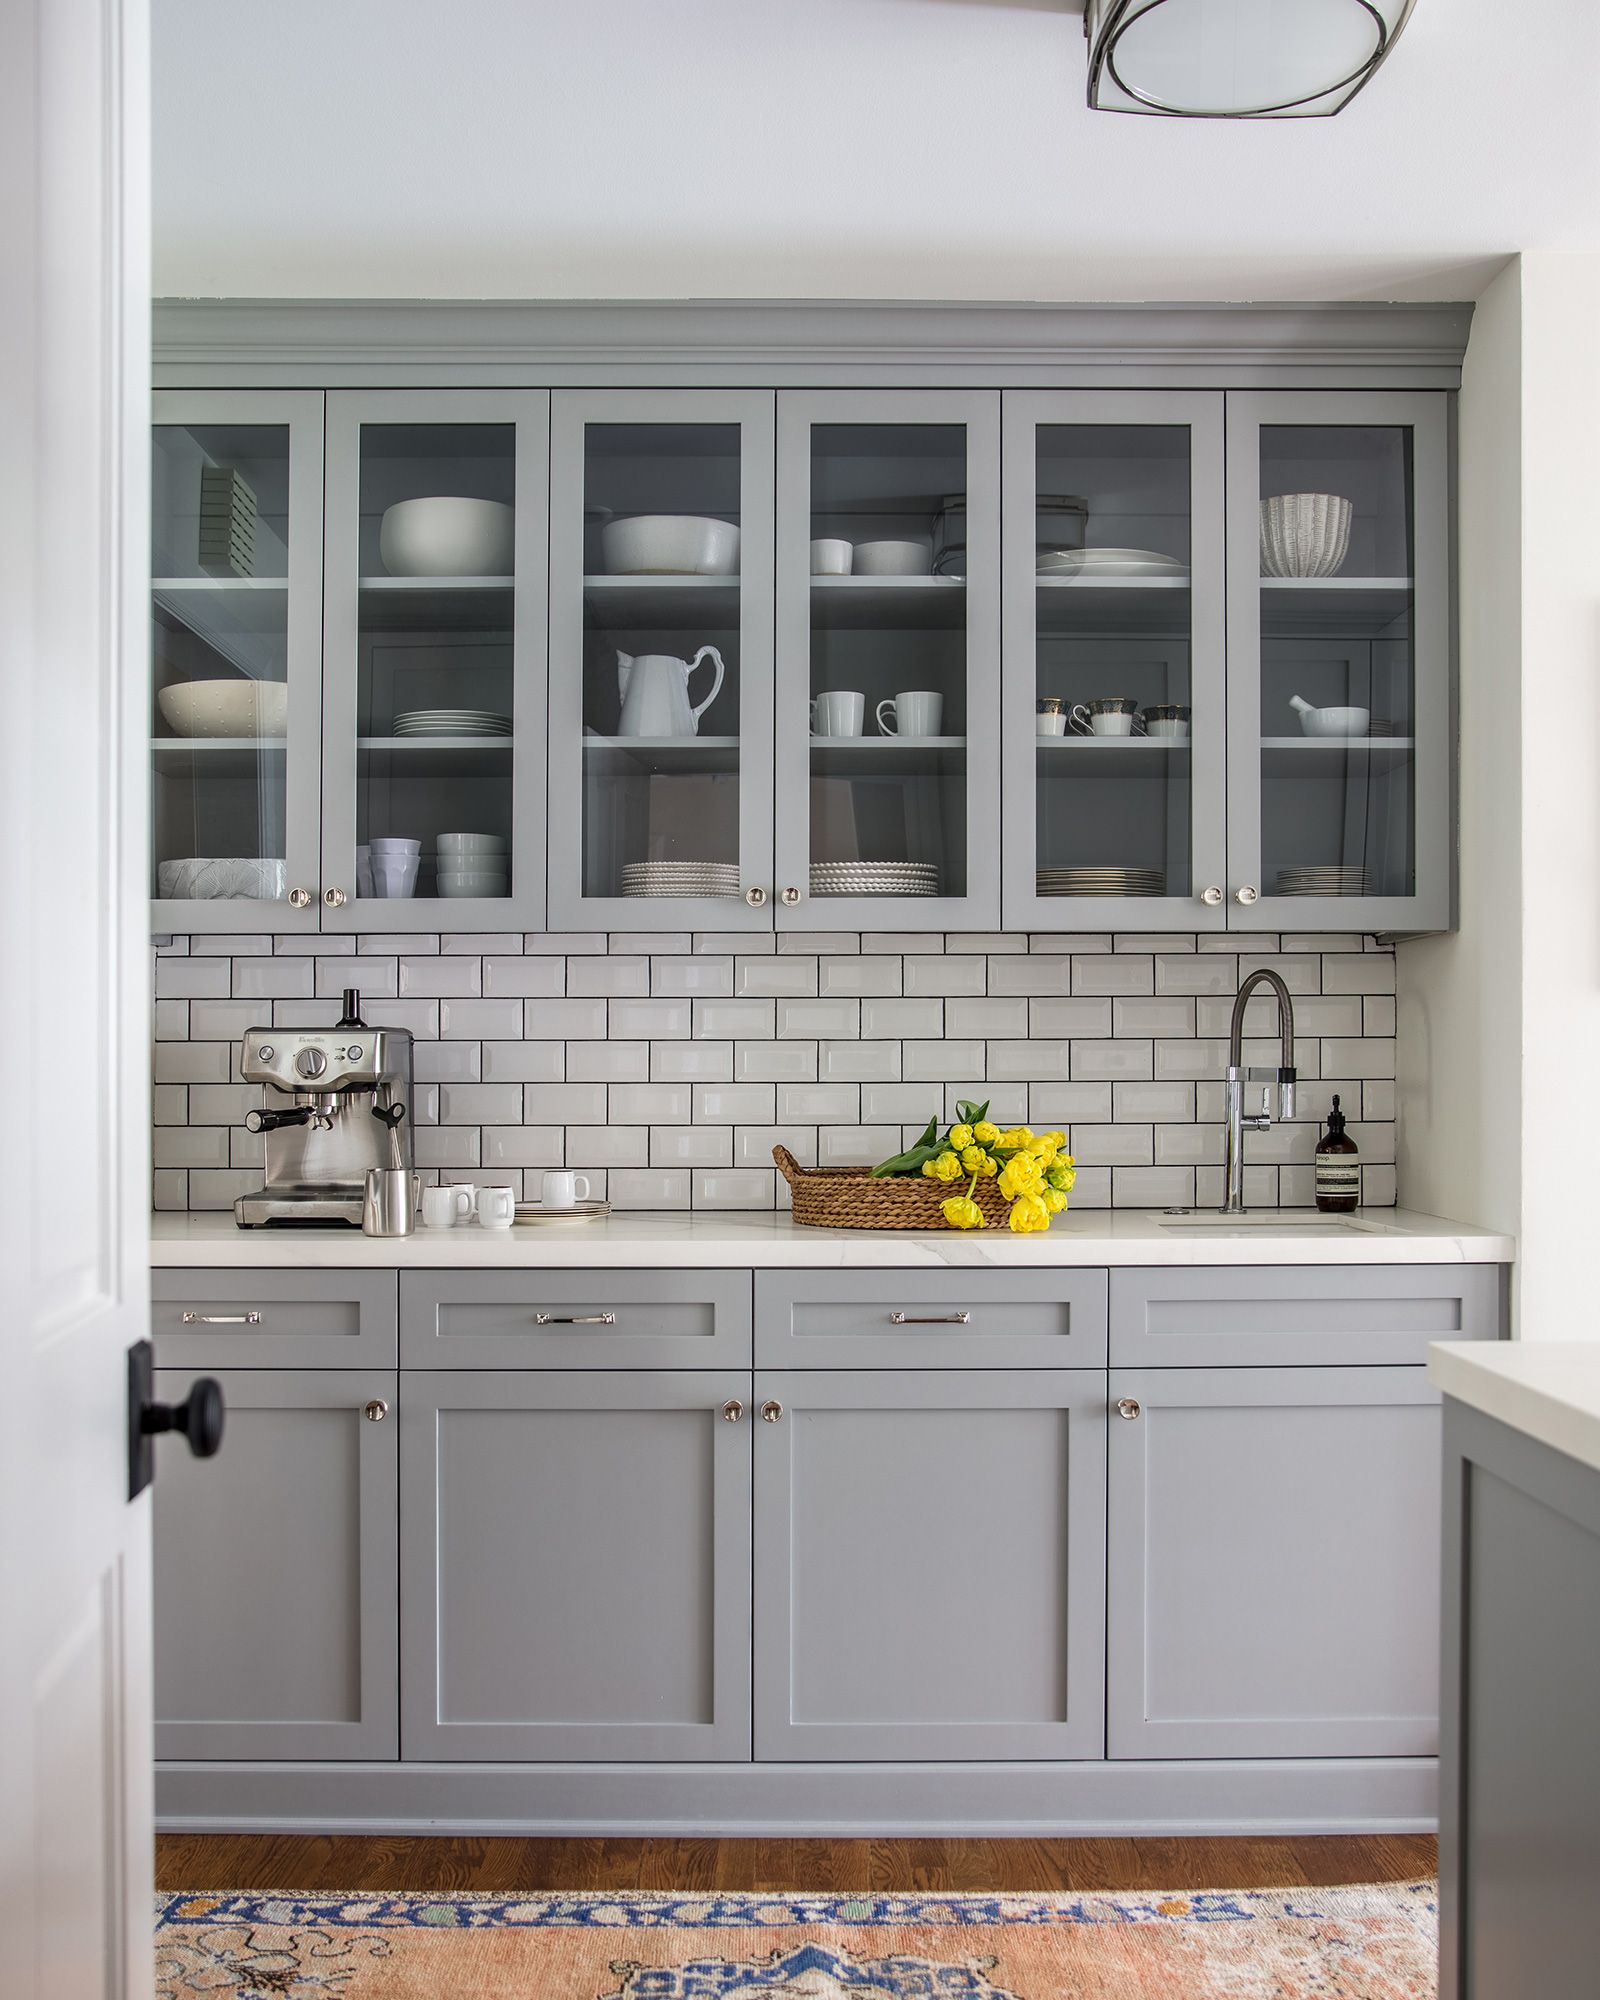 28 Antique White Kitchen Cabinets Ideas In 2019: Blue Gray Cabinetry In The Kitchen With White Subway Tile